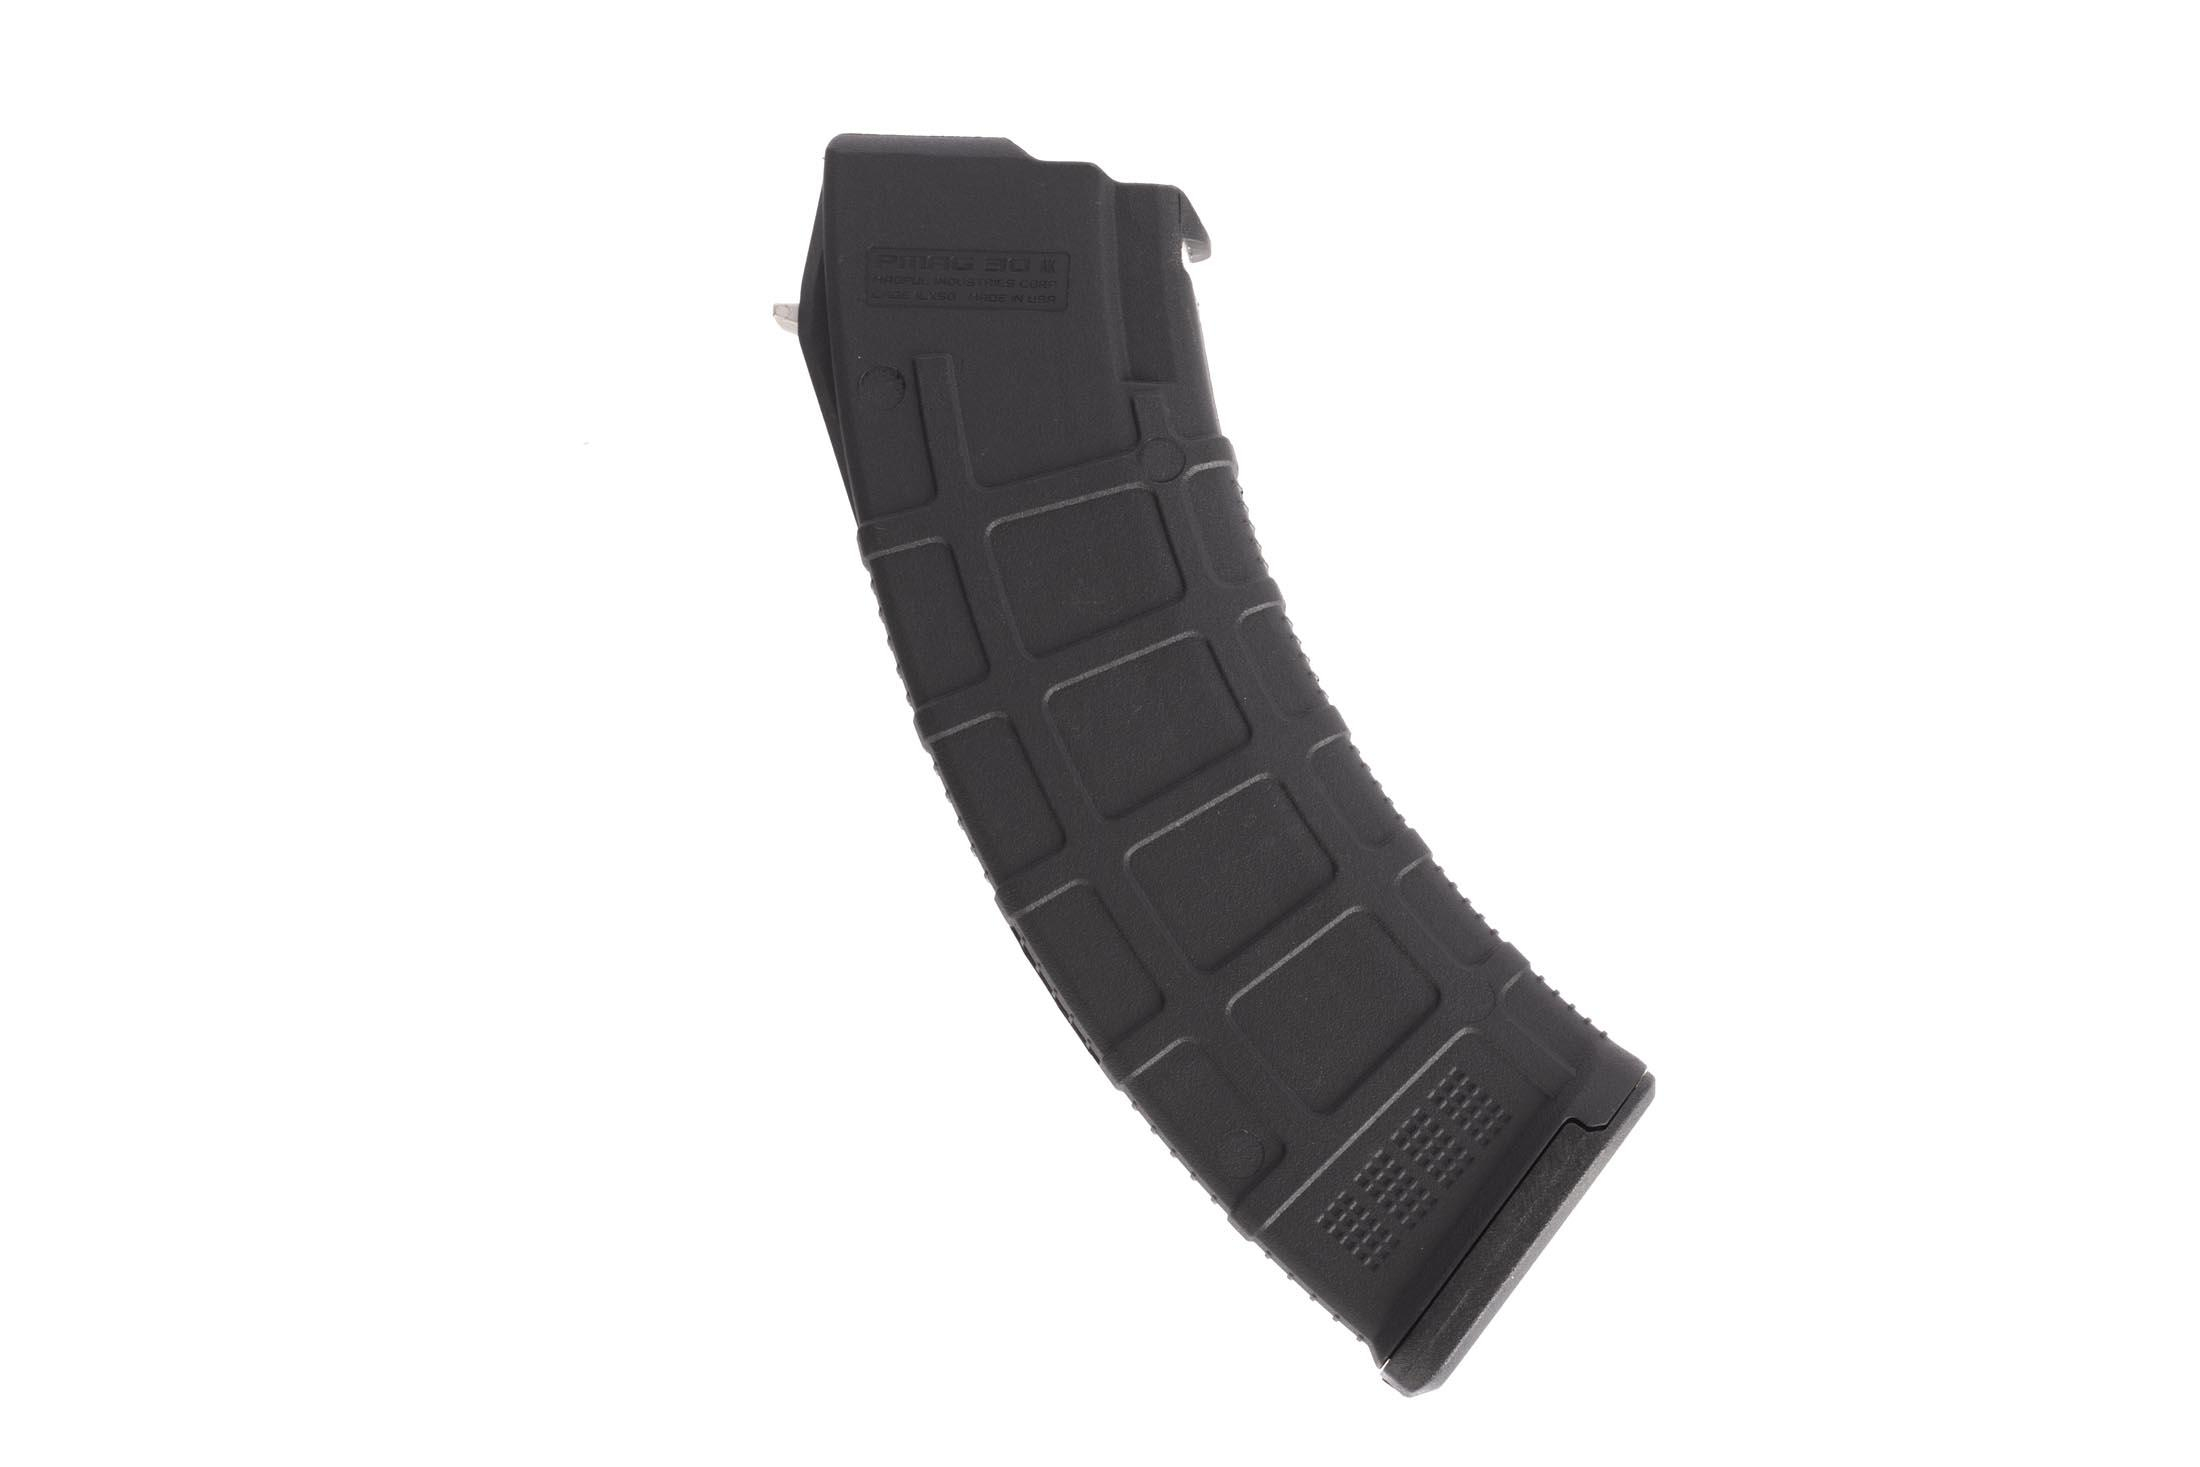 The Magpul AK PMAG Gen m3 30 round magazine features steel reinforced feed lips